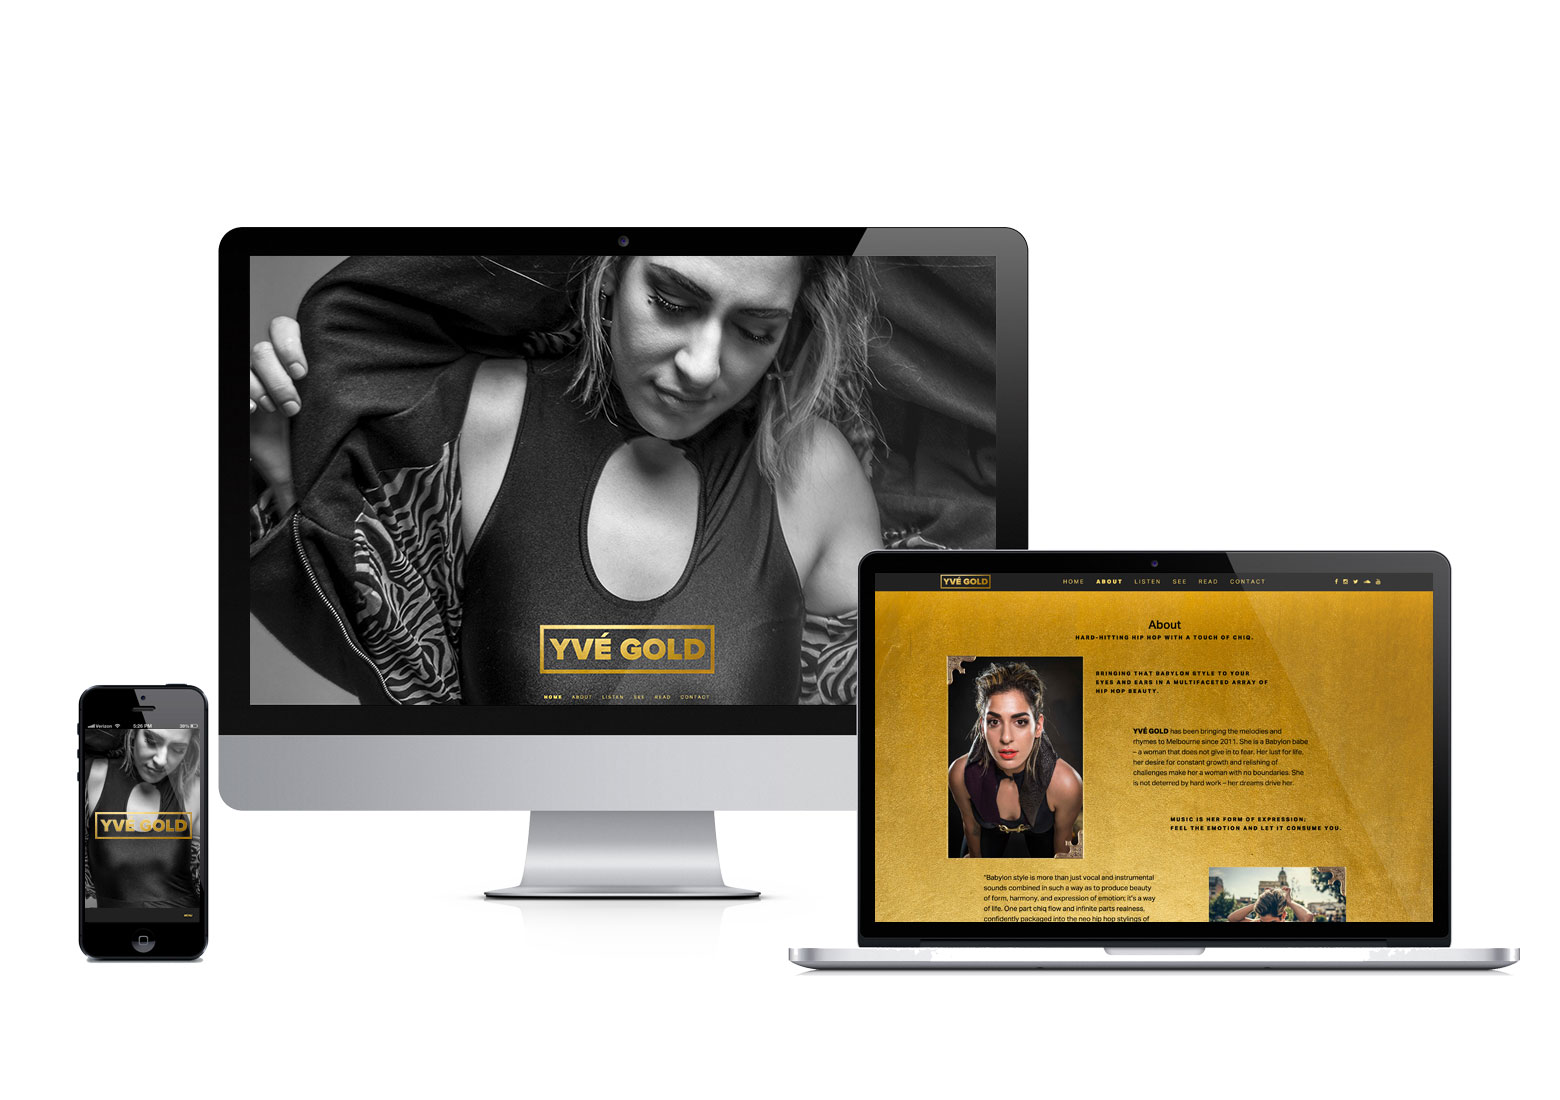 Yve Gold website and branding by Rising Creative